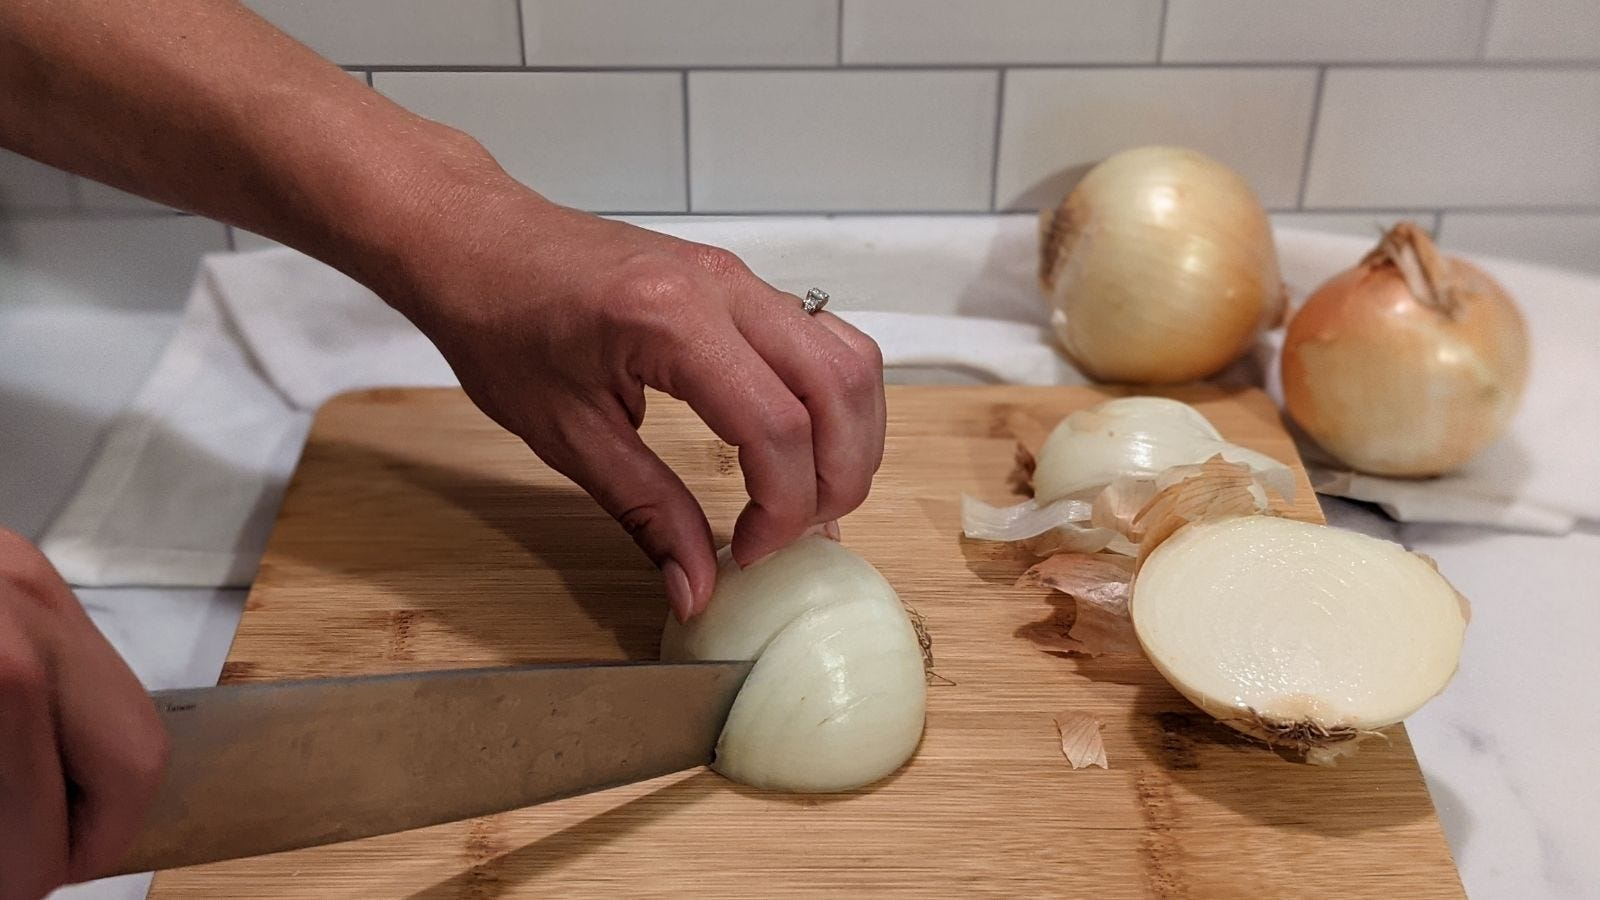 Slicing an onion multiple times vertically with a few onions and peels in the background.